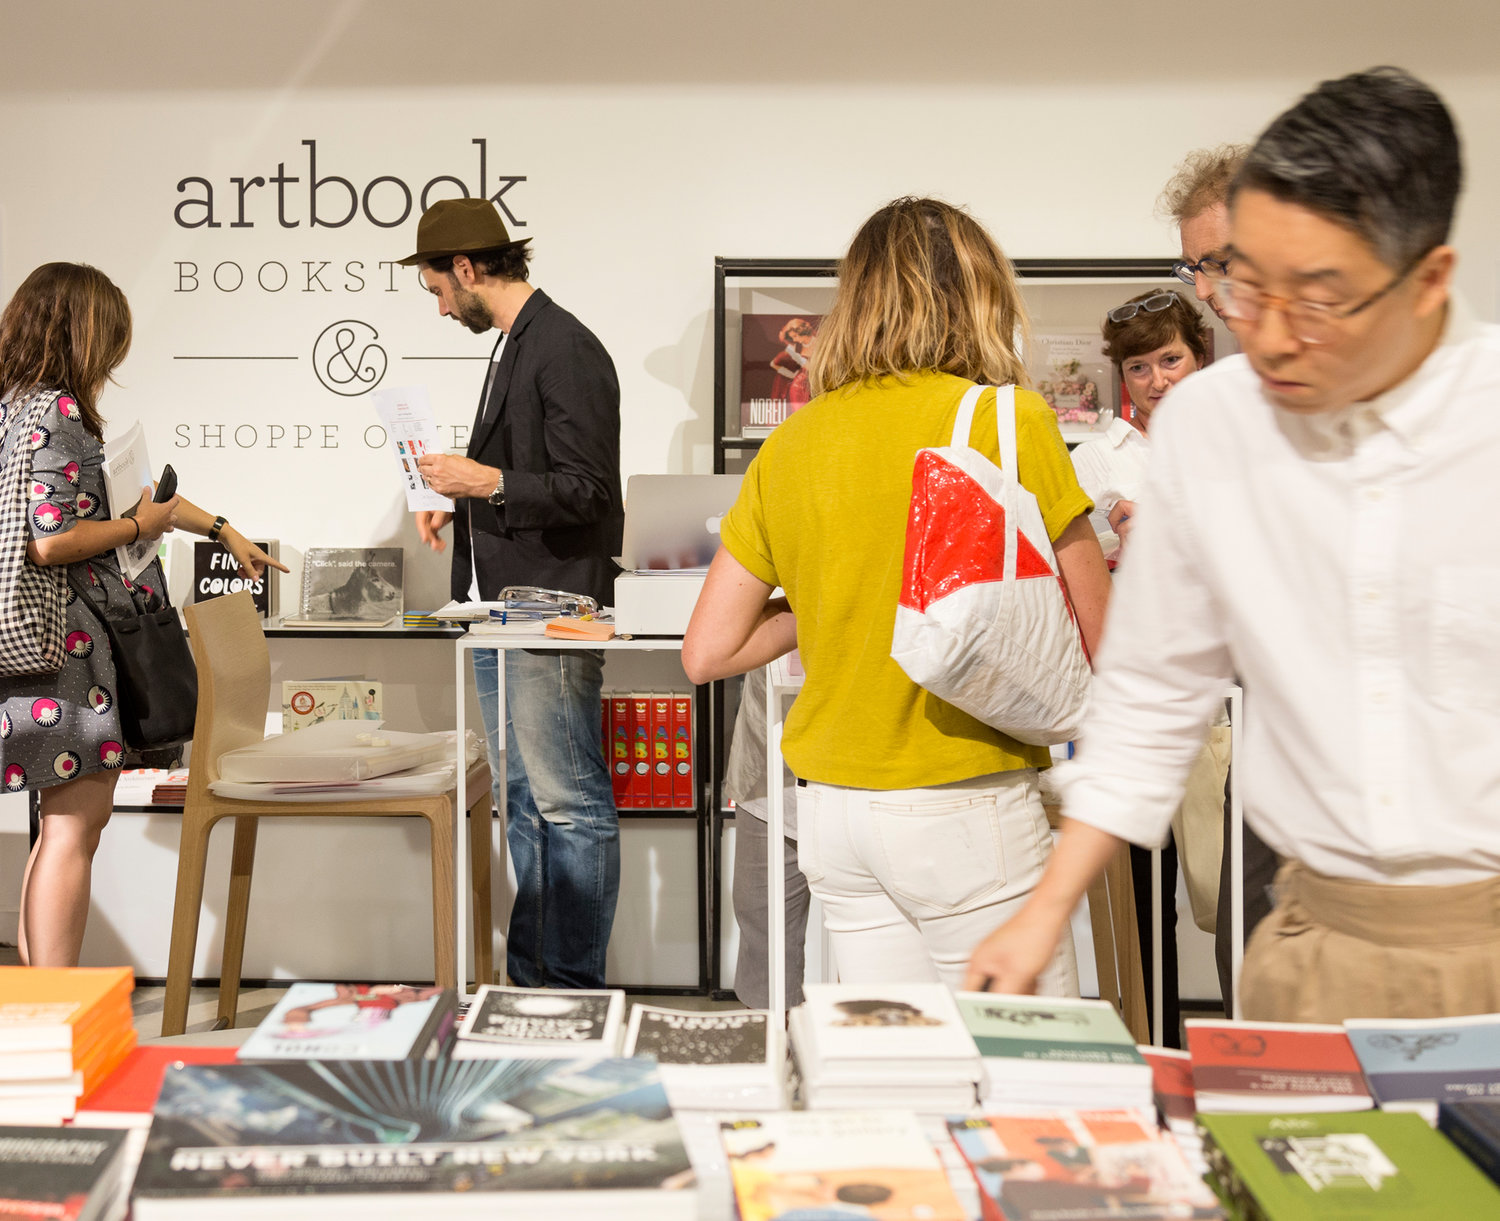 The Artbook Bookstore at Shoppe Object